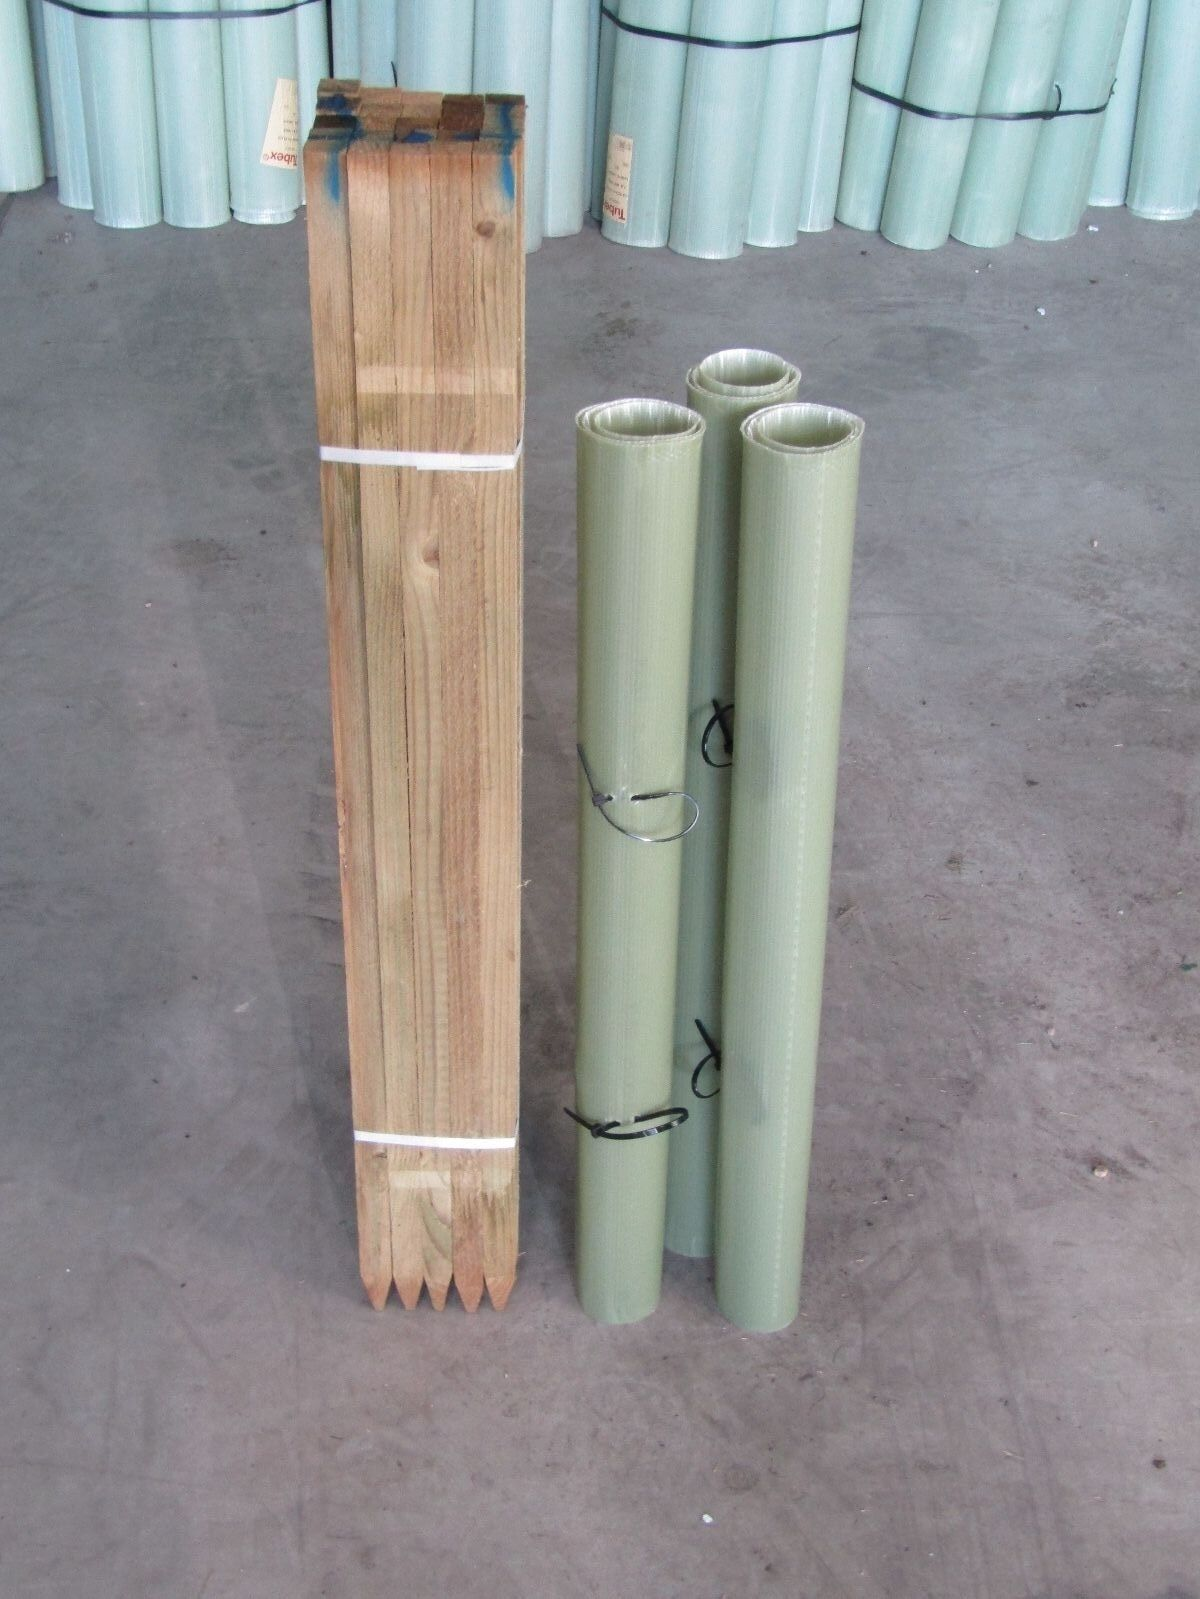 Tree Shelter Protection Guards Tubex Rabbit Deer Tubes Pack of 50 4ft 1.2m